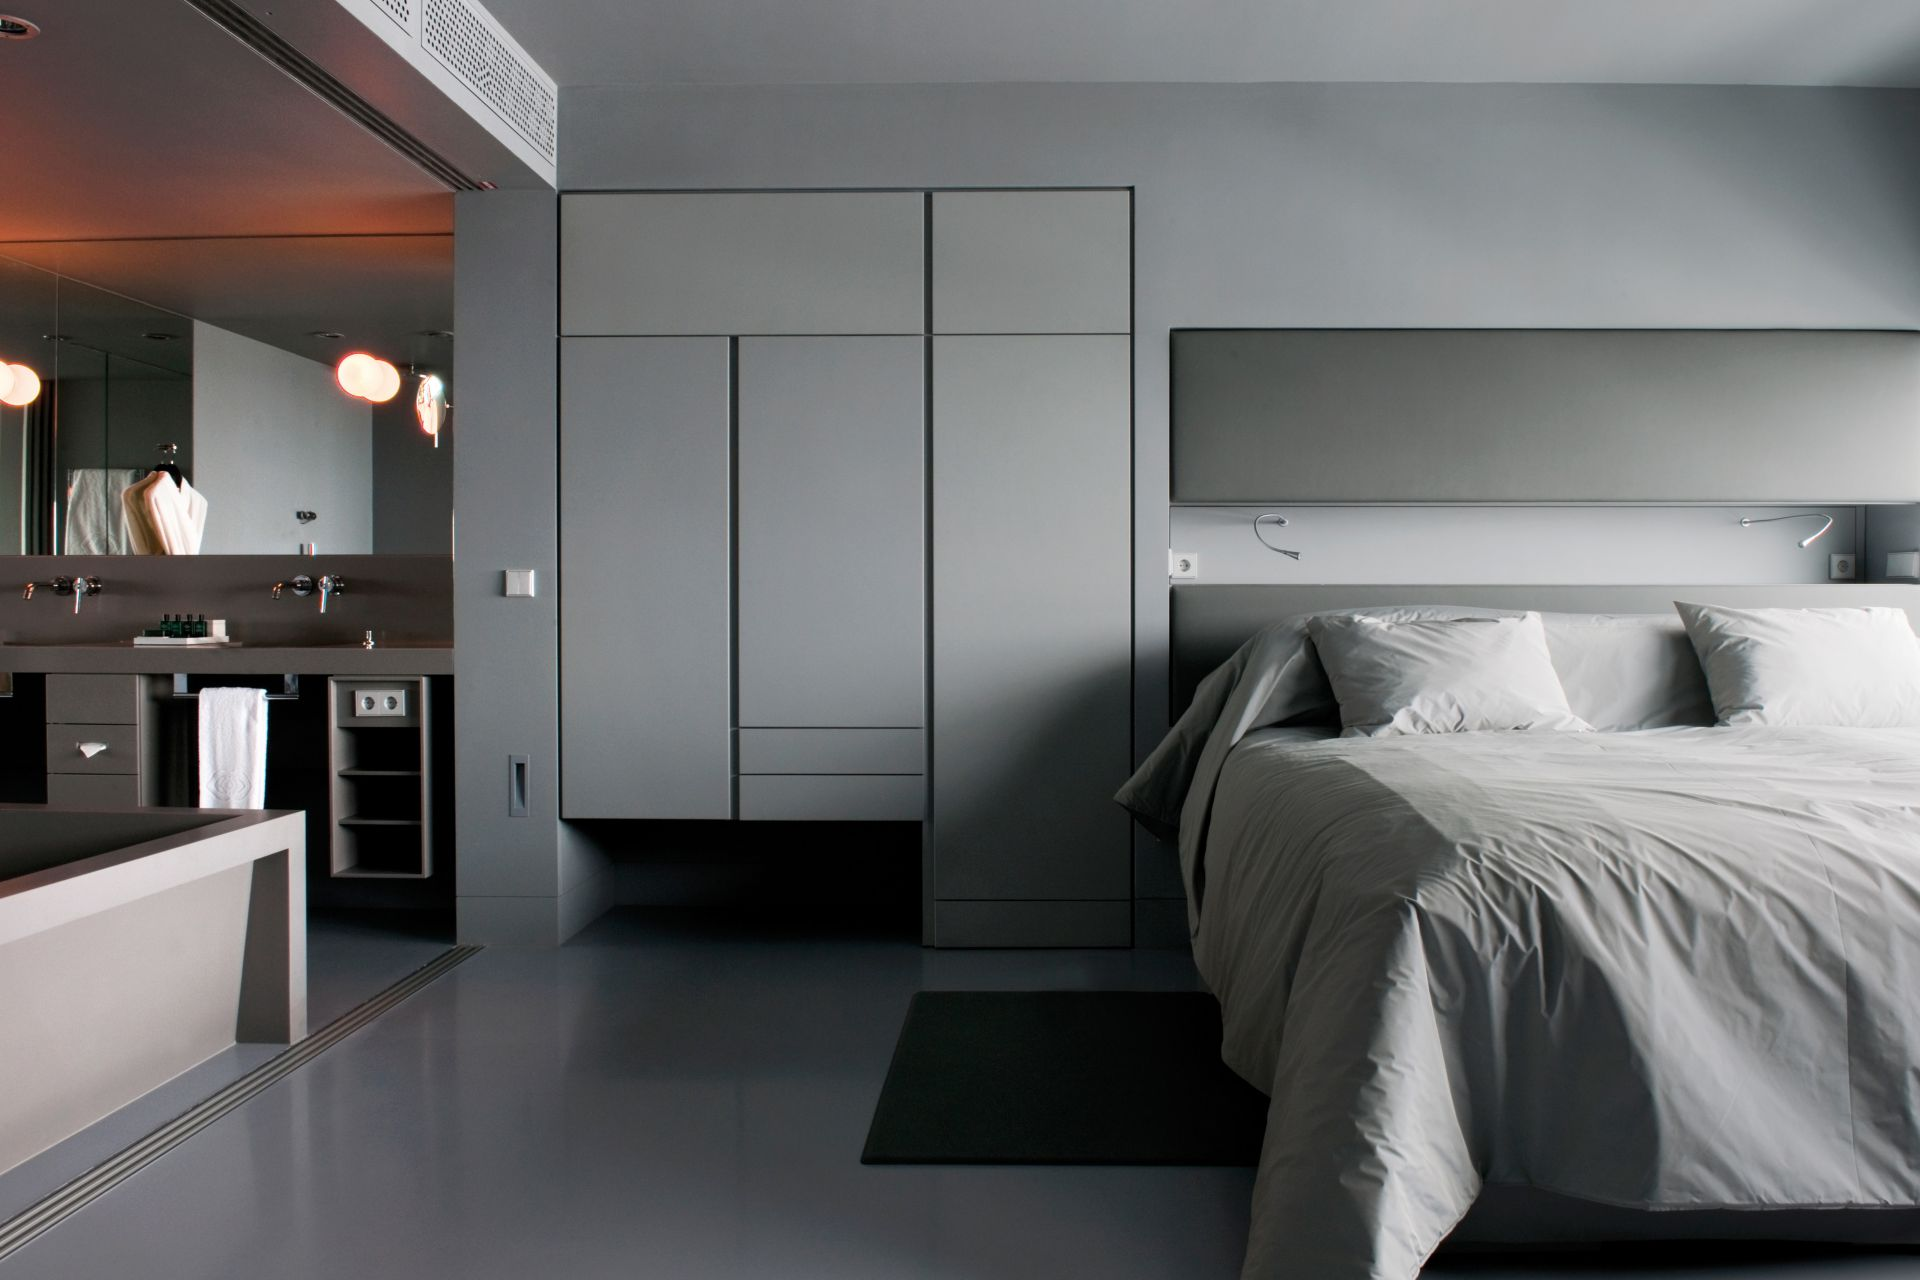 Sika ComfortFloor® grey floor in modern hotel room with bed and bathroom